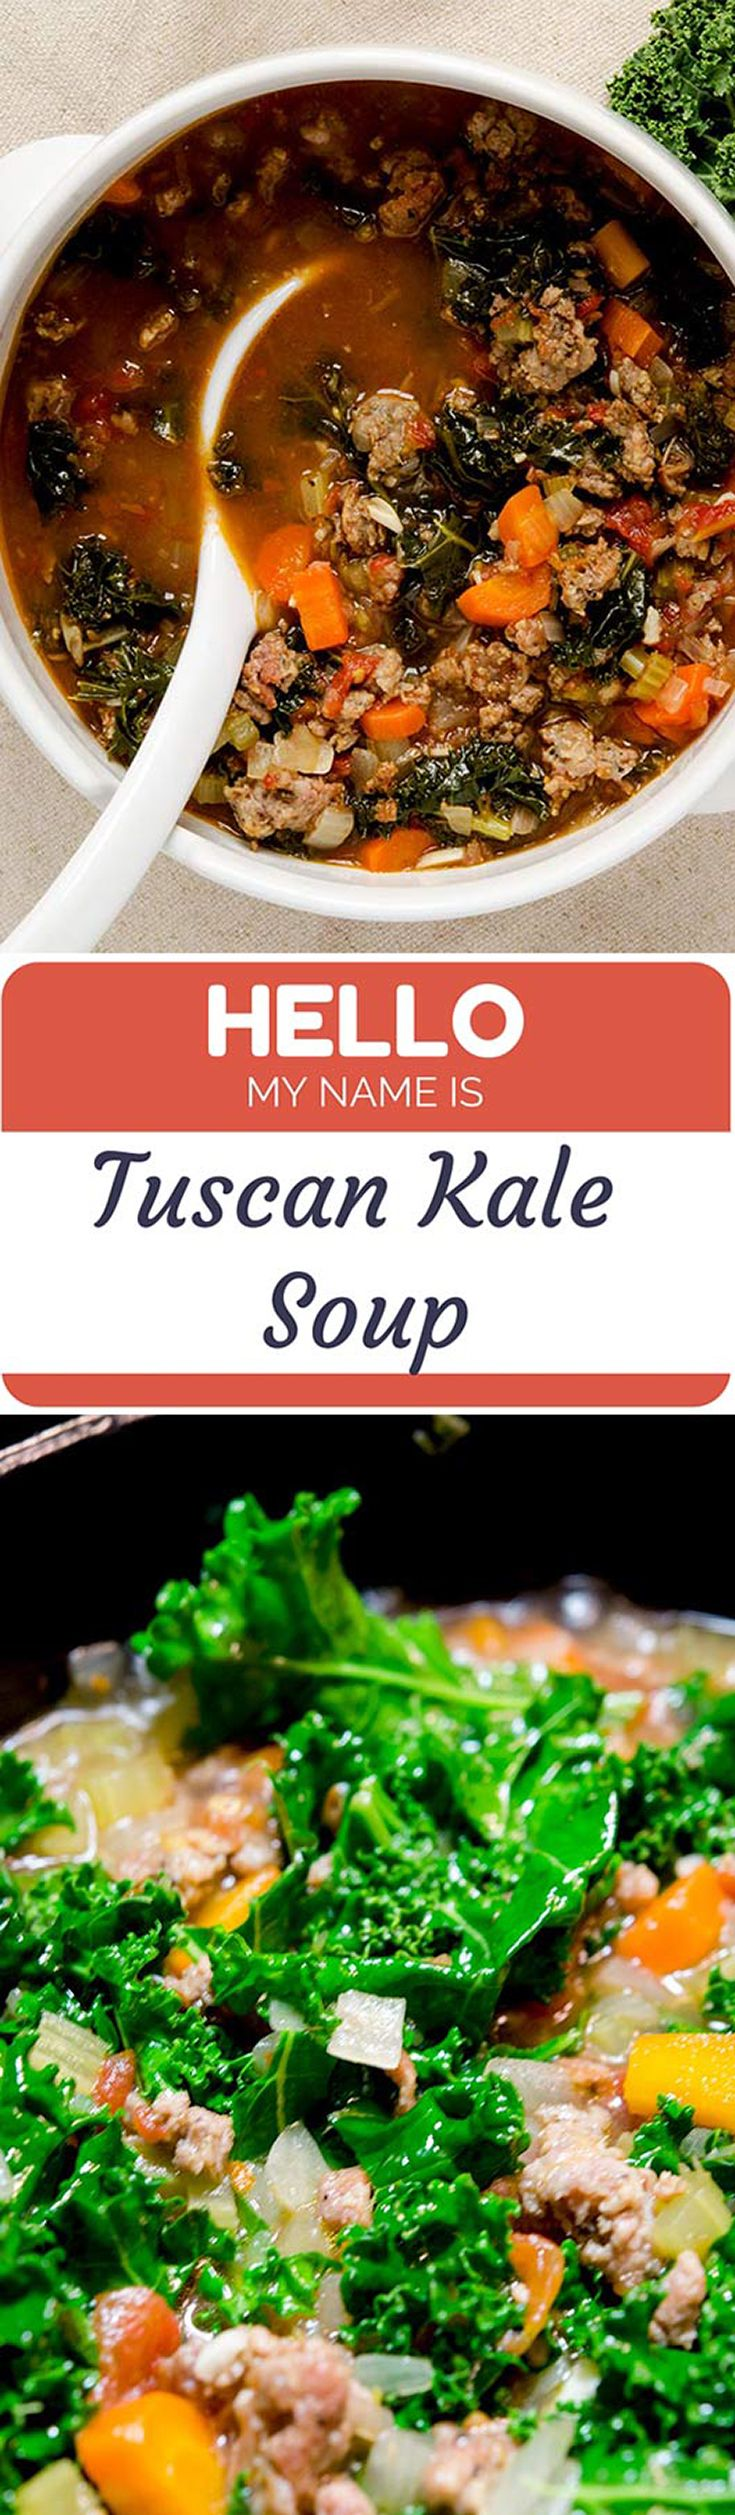 This is one of my favorite soup recipes. A tuscan kale soup with spicy Italian sausage and super fresh ingredients just rocks my world. This soup has rustic flavors and is packed full of tummy filling ingredients. You should print out this tuscan kale recipe and try it tonight!